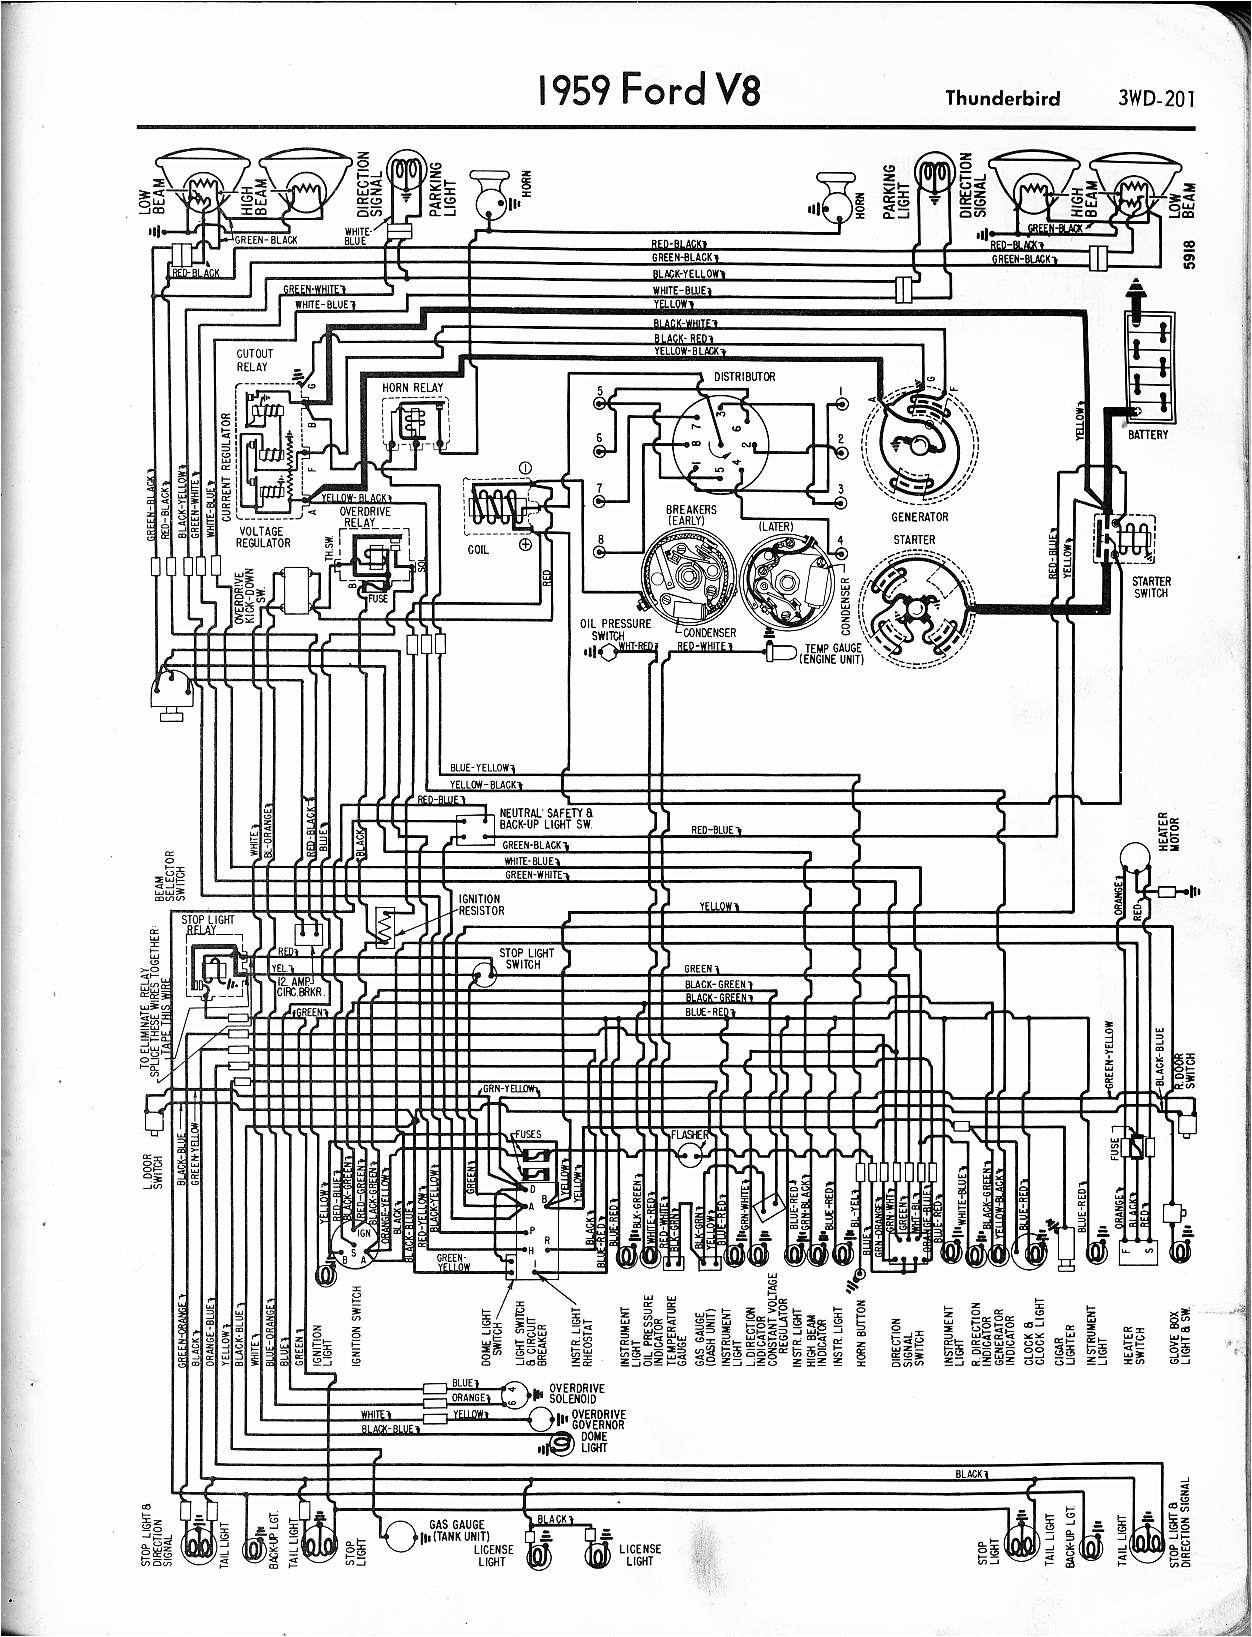 1957 ford wiring harness wiring diagram used 1957 ford power window wiring diagram